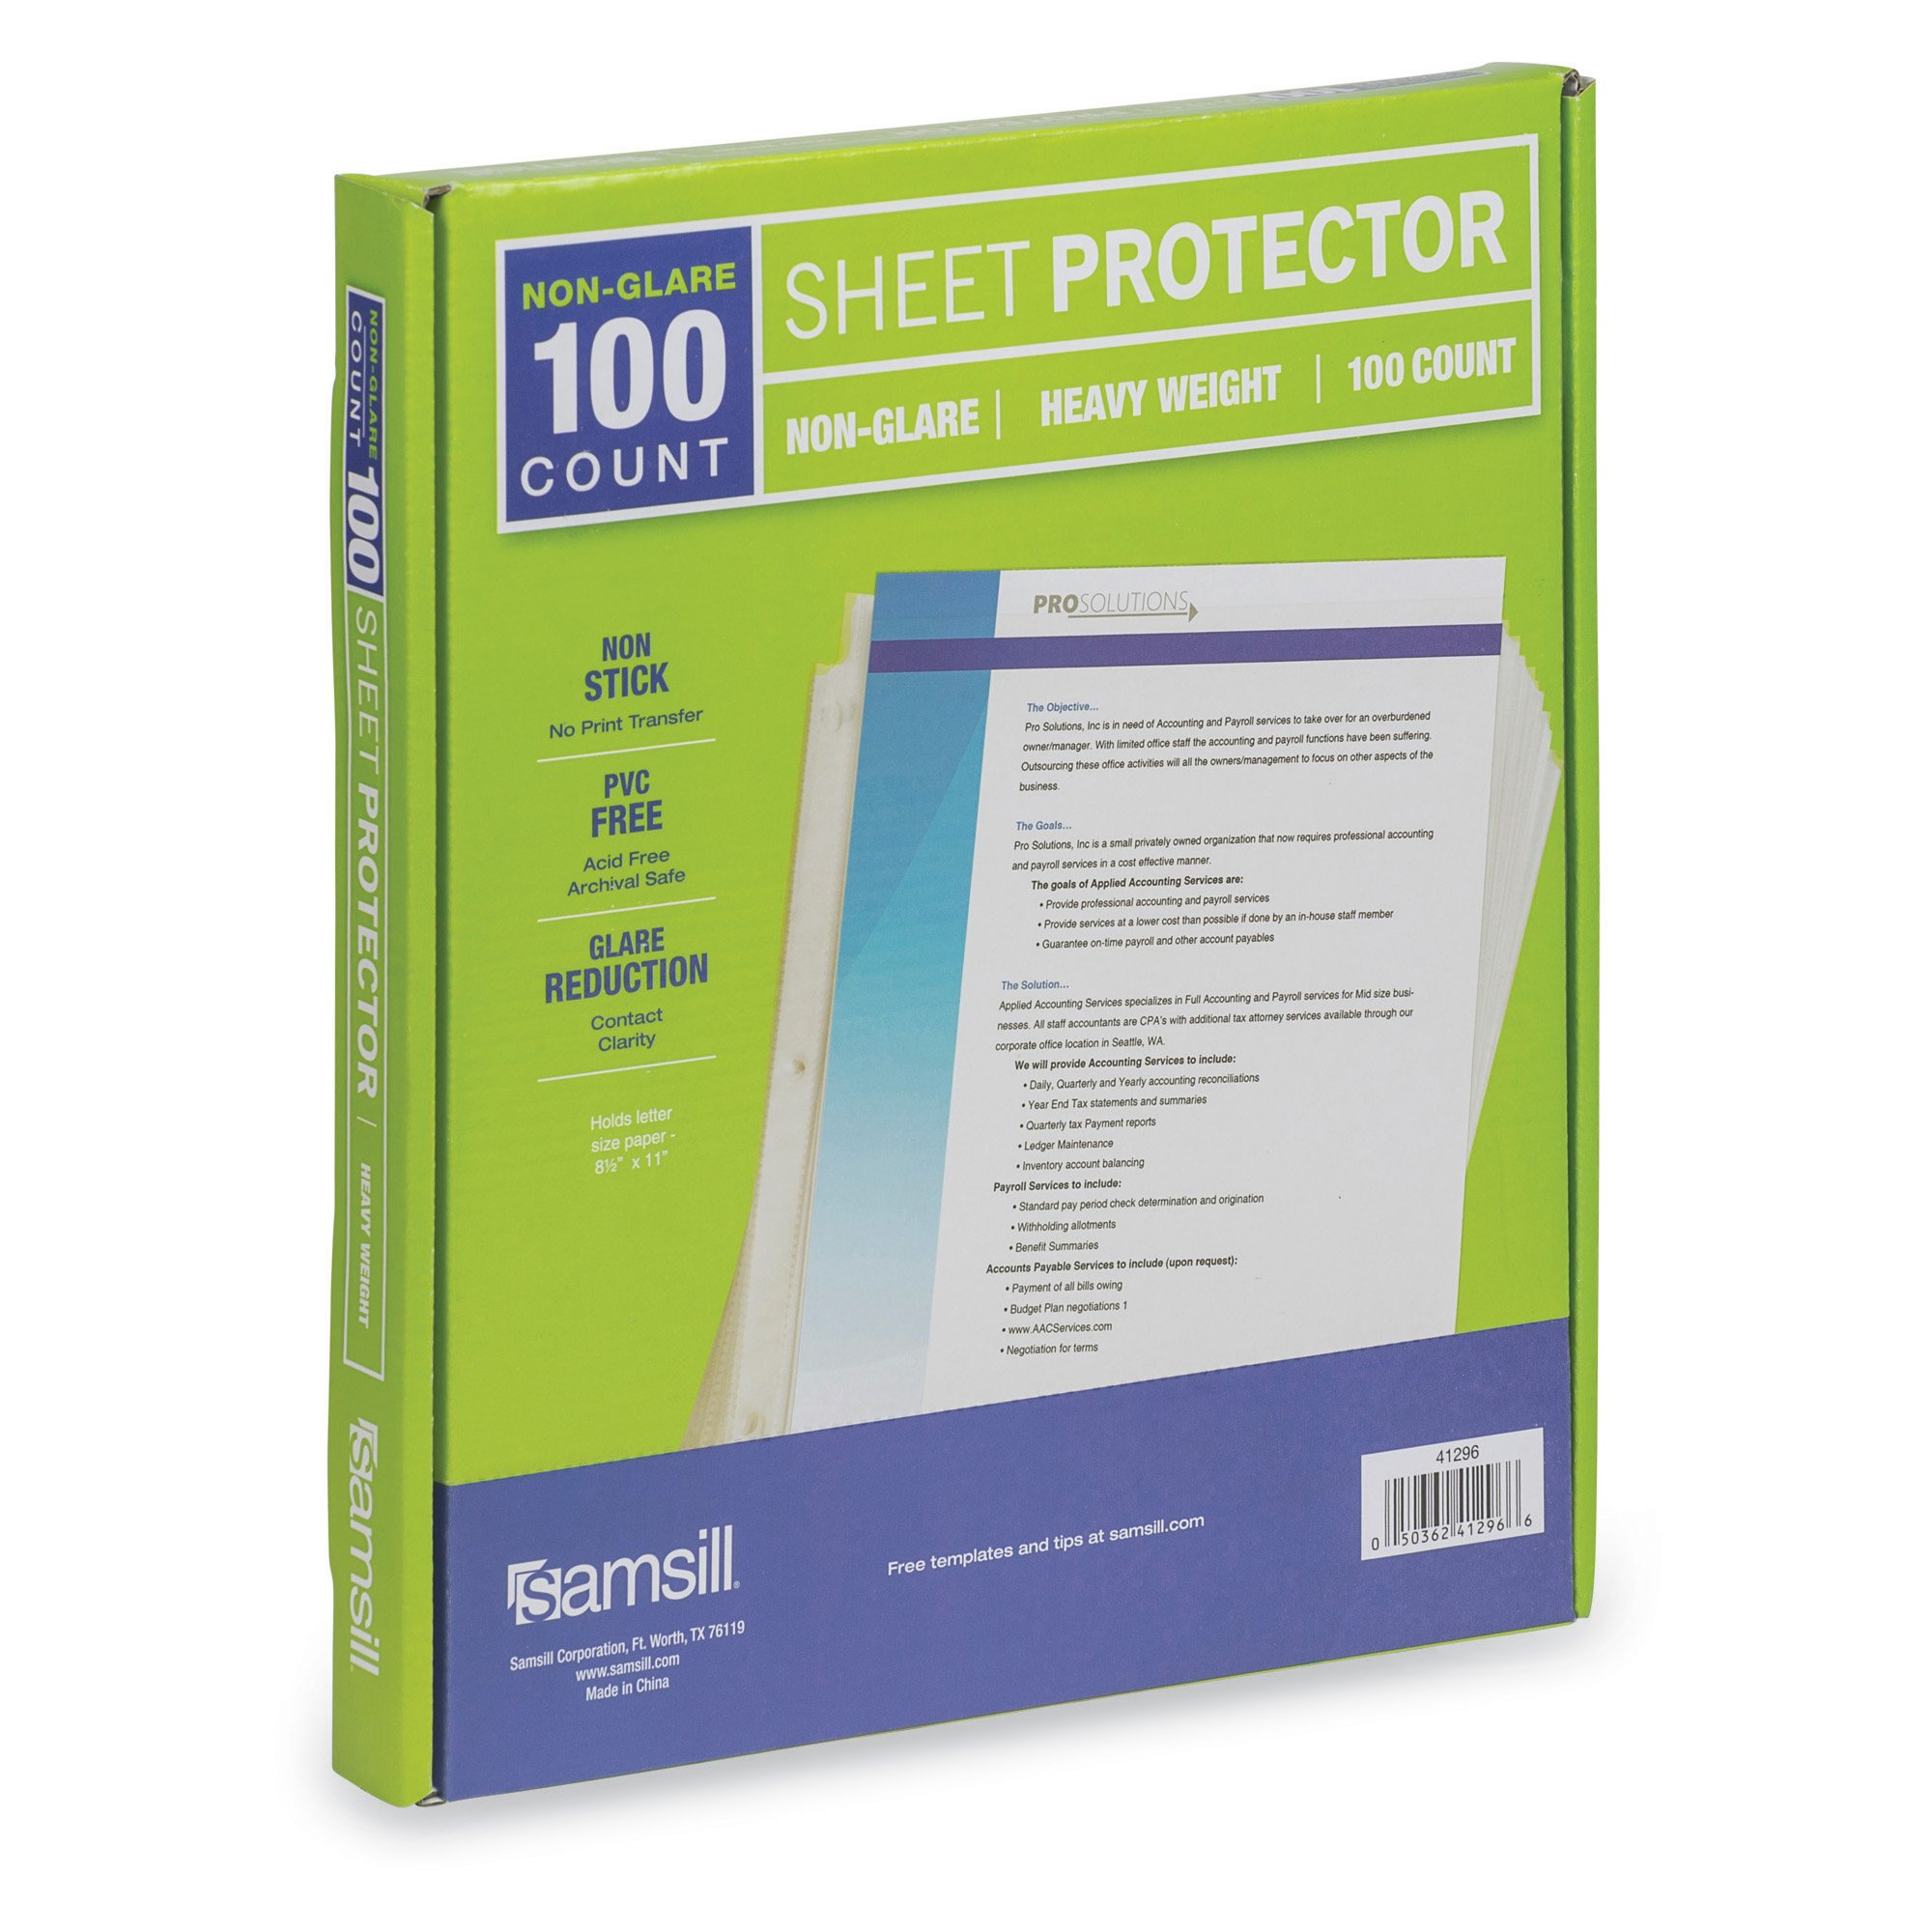 Samsill Heavyweight Non-Glare Sheet Protectors, Box of 100, Acid Free & Archival Safe, 8.5 x 11 Inches, Top Load